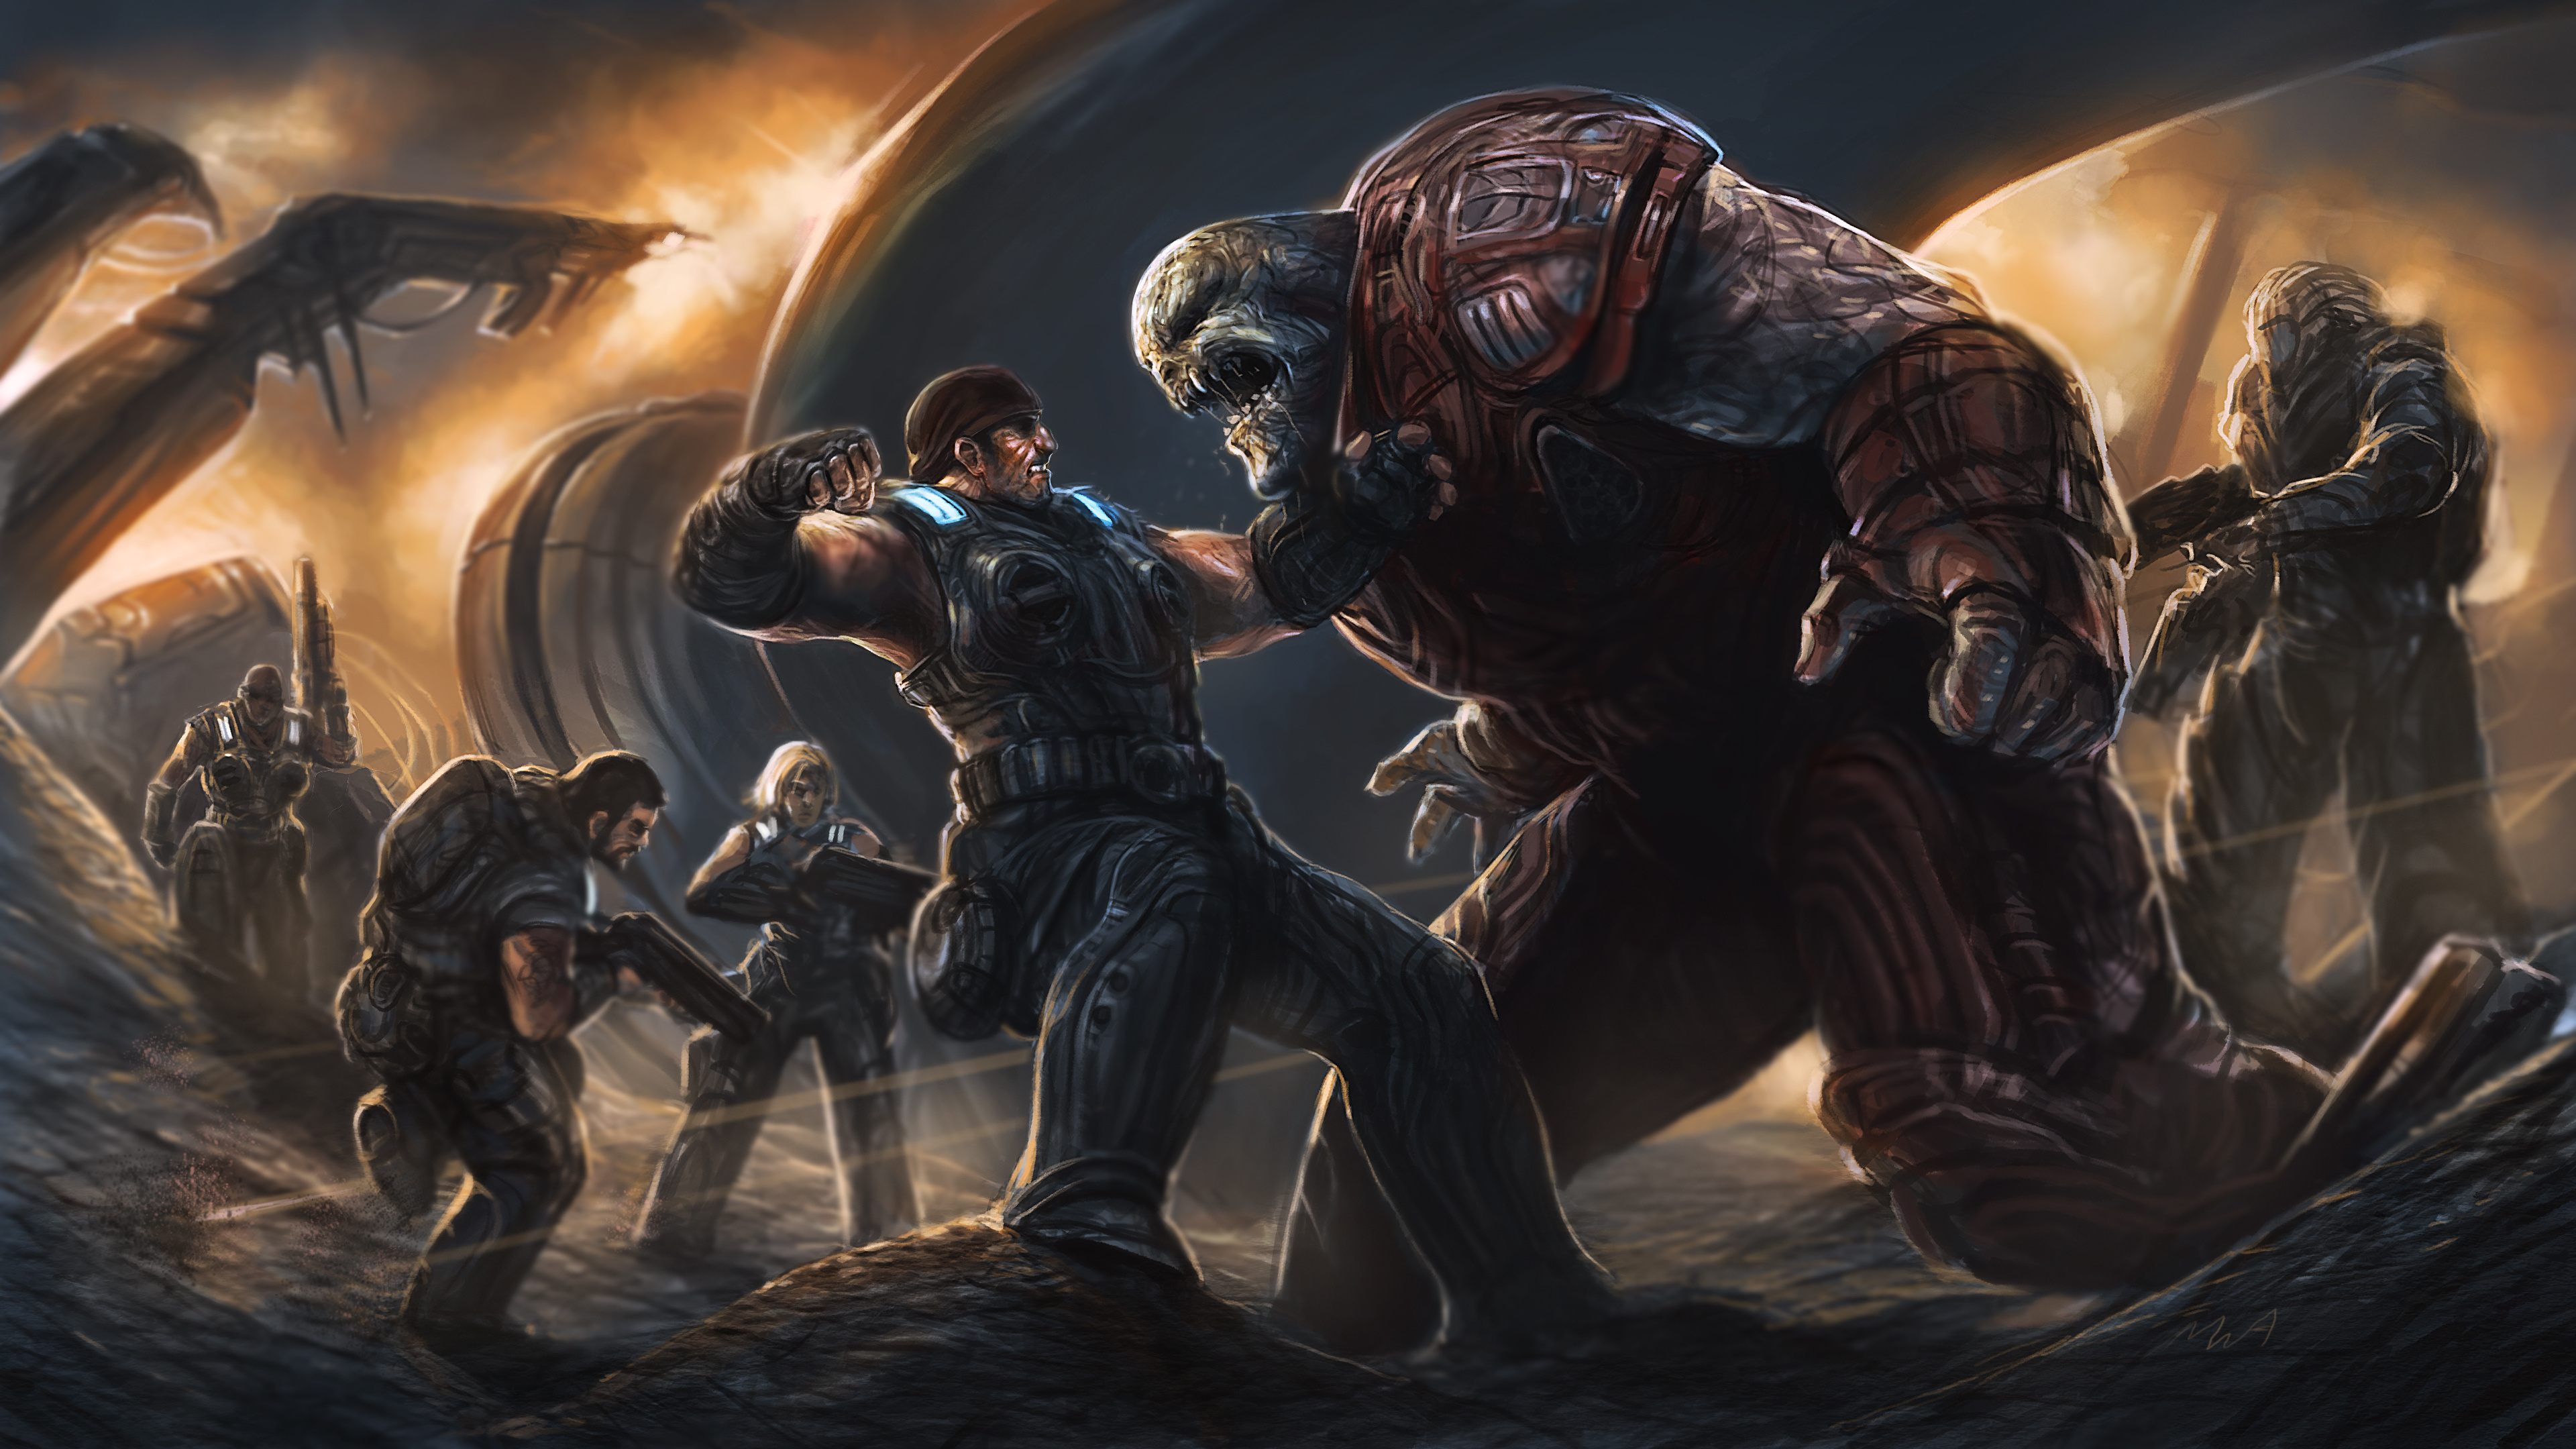 82 Gears Of War Hd Wallpapers Background Images Wallpaper Abyss